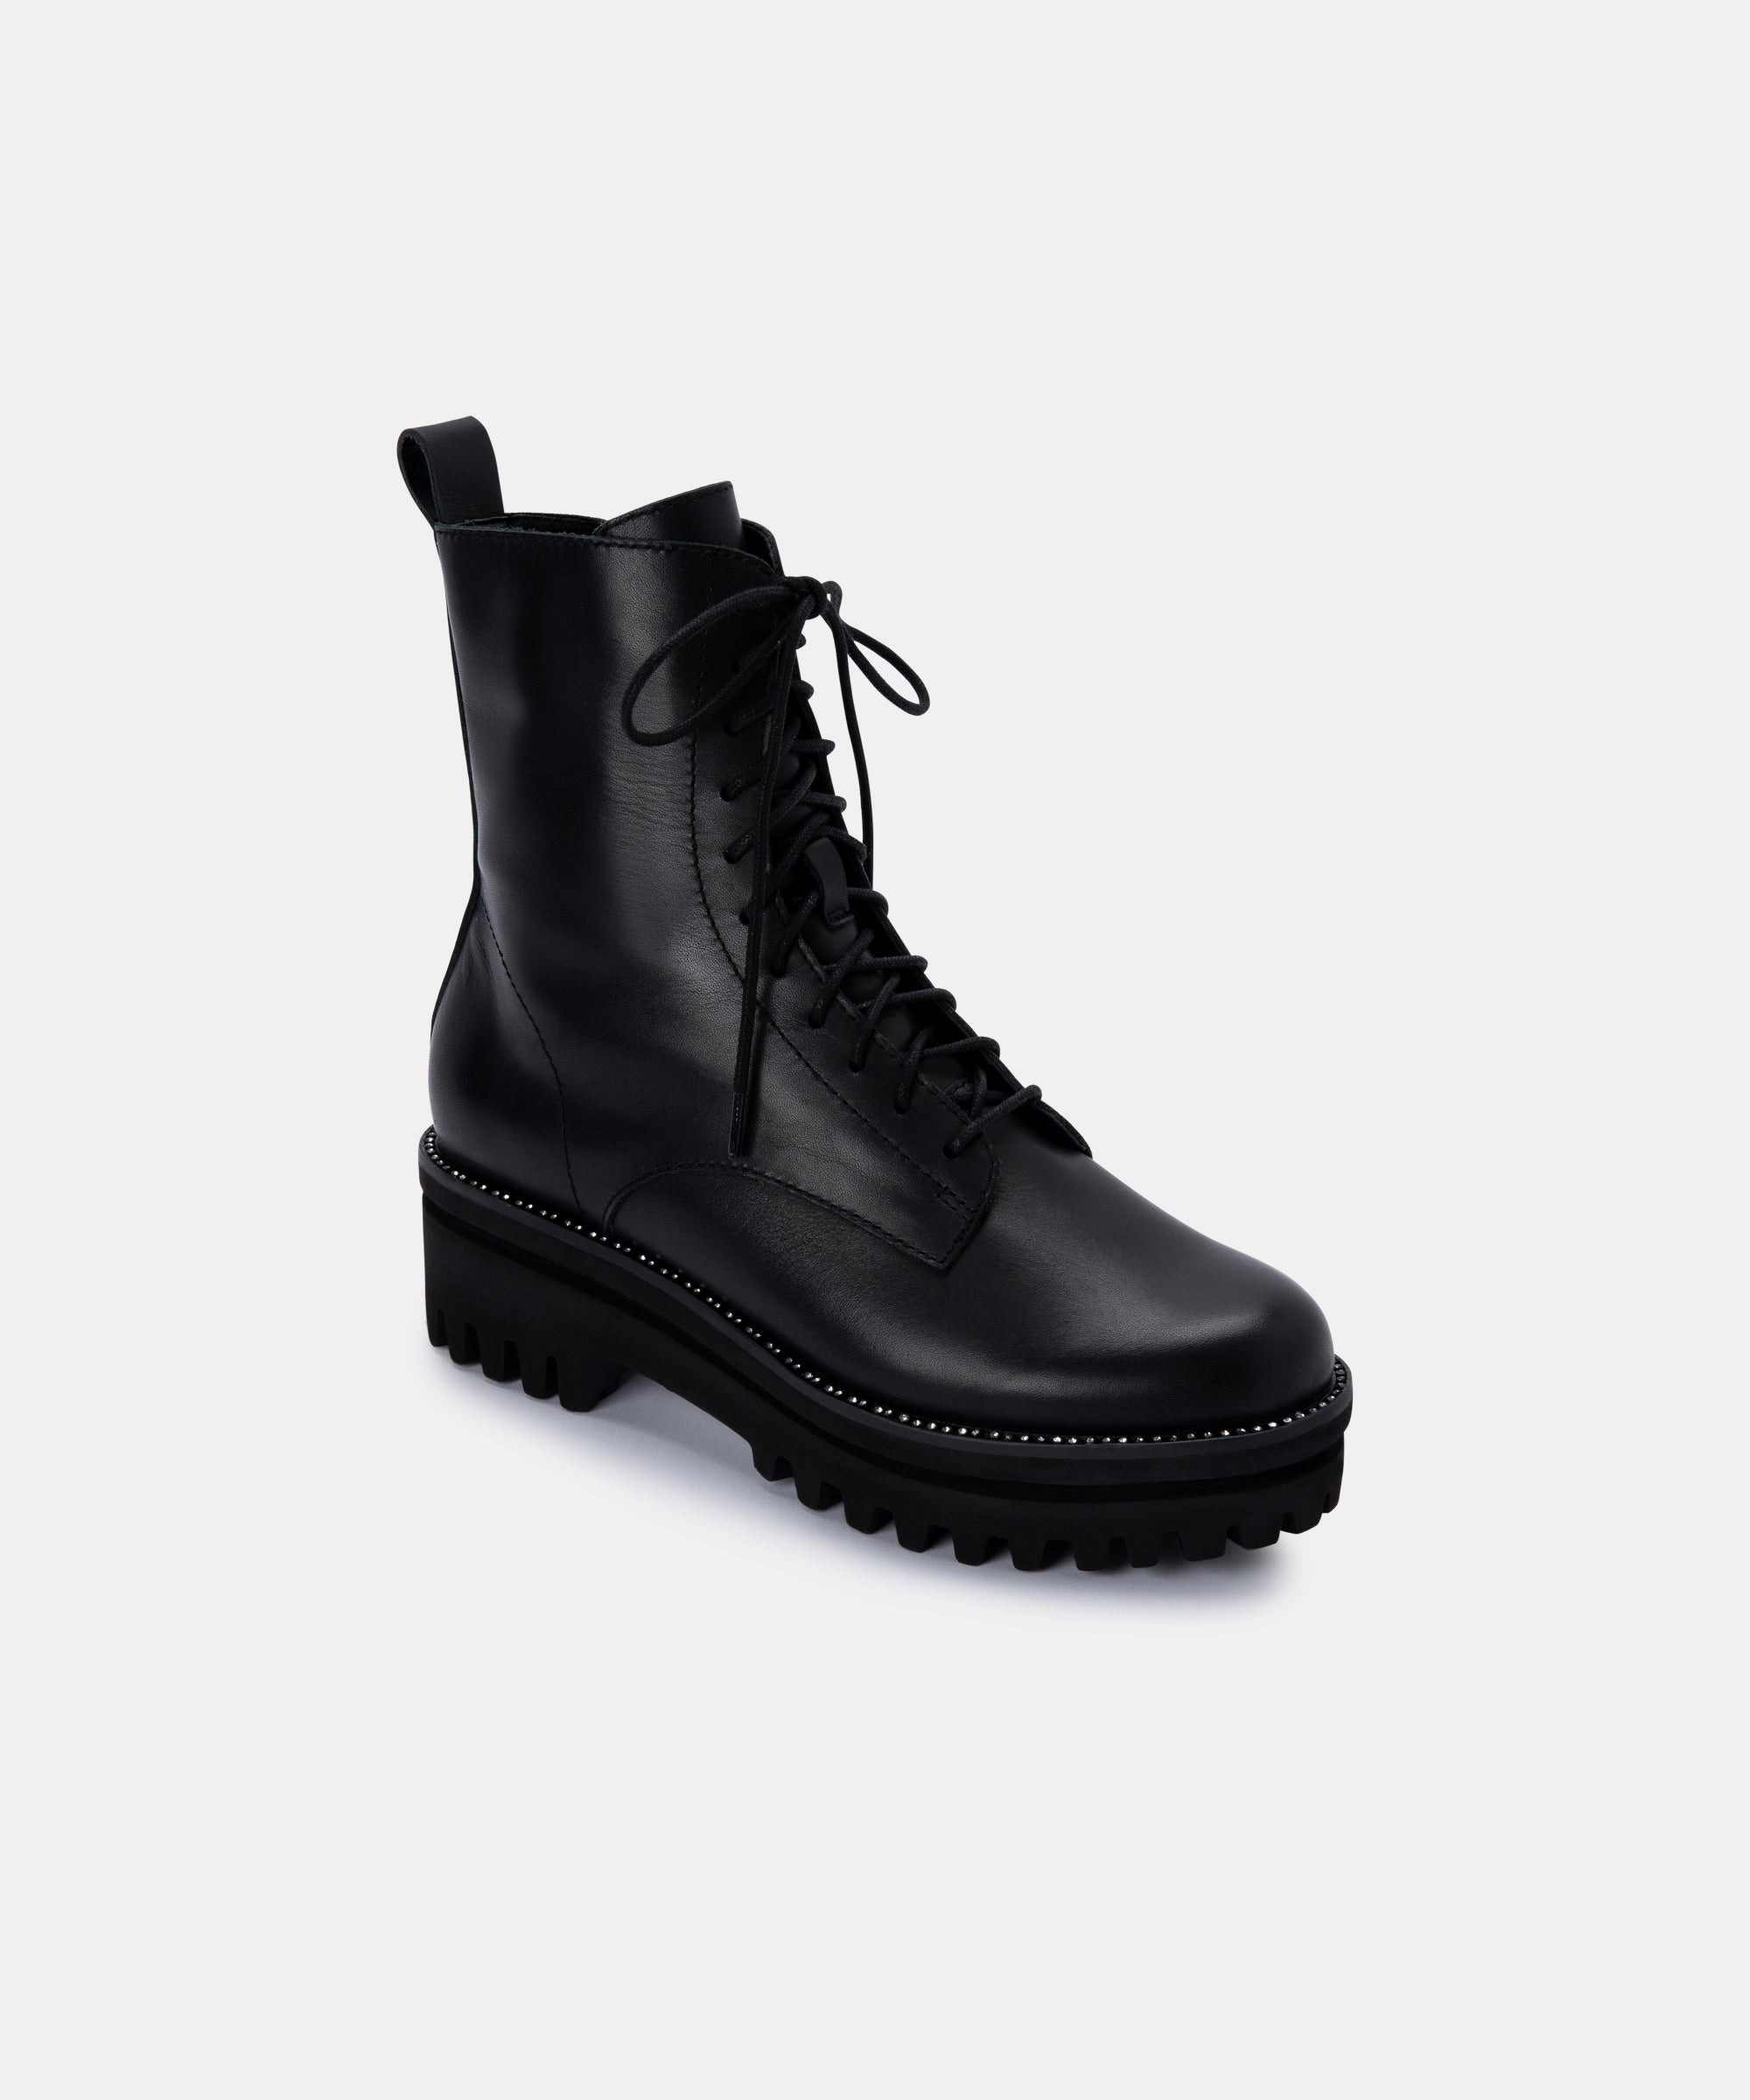 PRYM BOOTS IN BLACK LEATHER – Dolce Vita